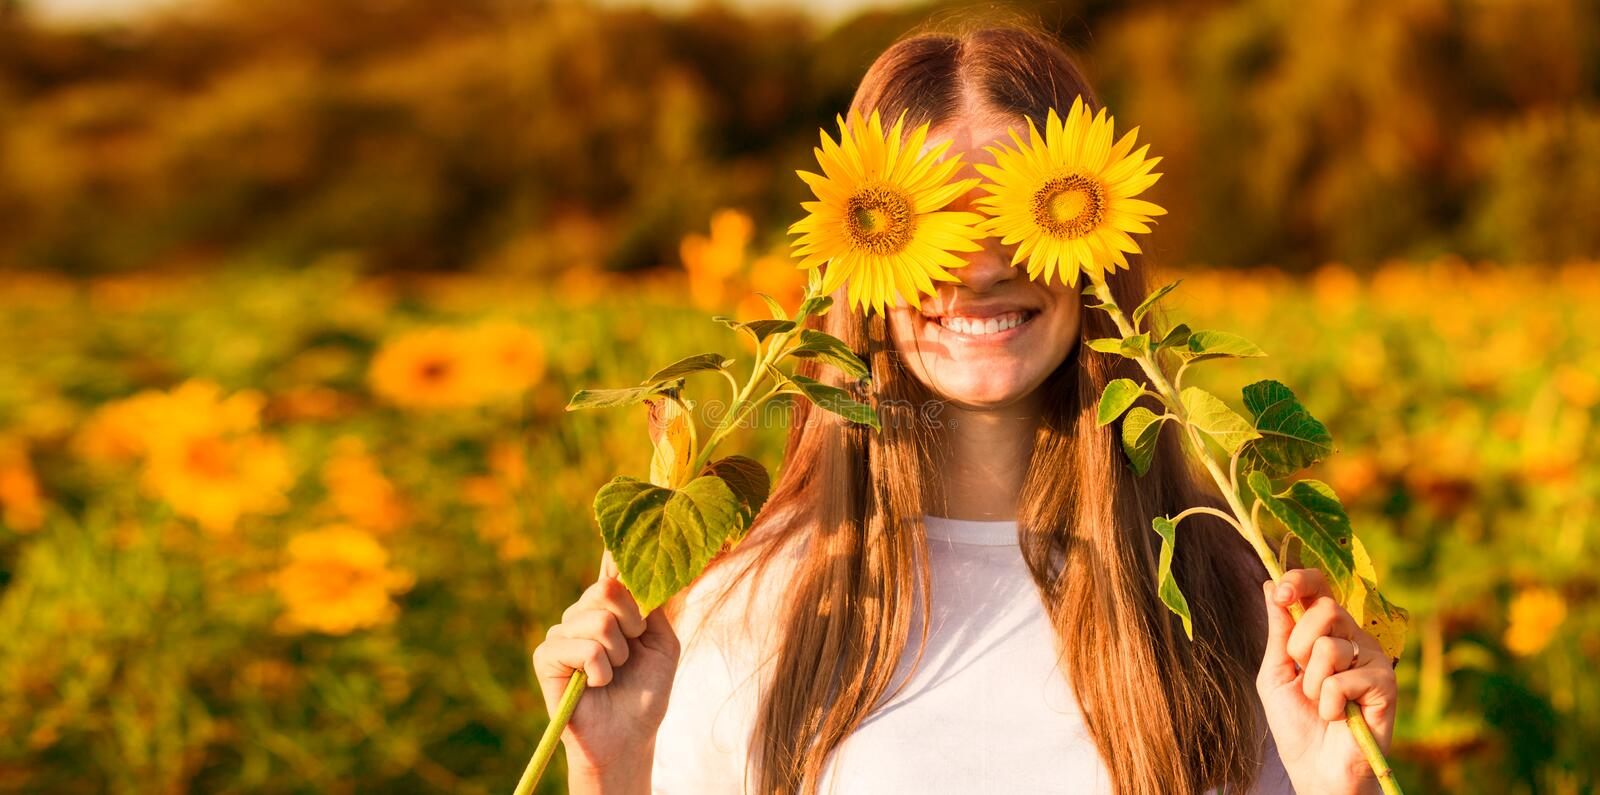 Summer portrait. Happy joyful girl with sunflower enjoying nature and laughing. On sunflower field royalty free stock photos